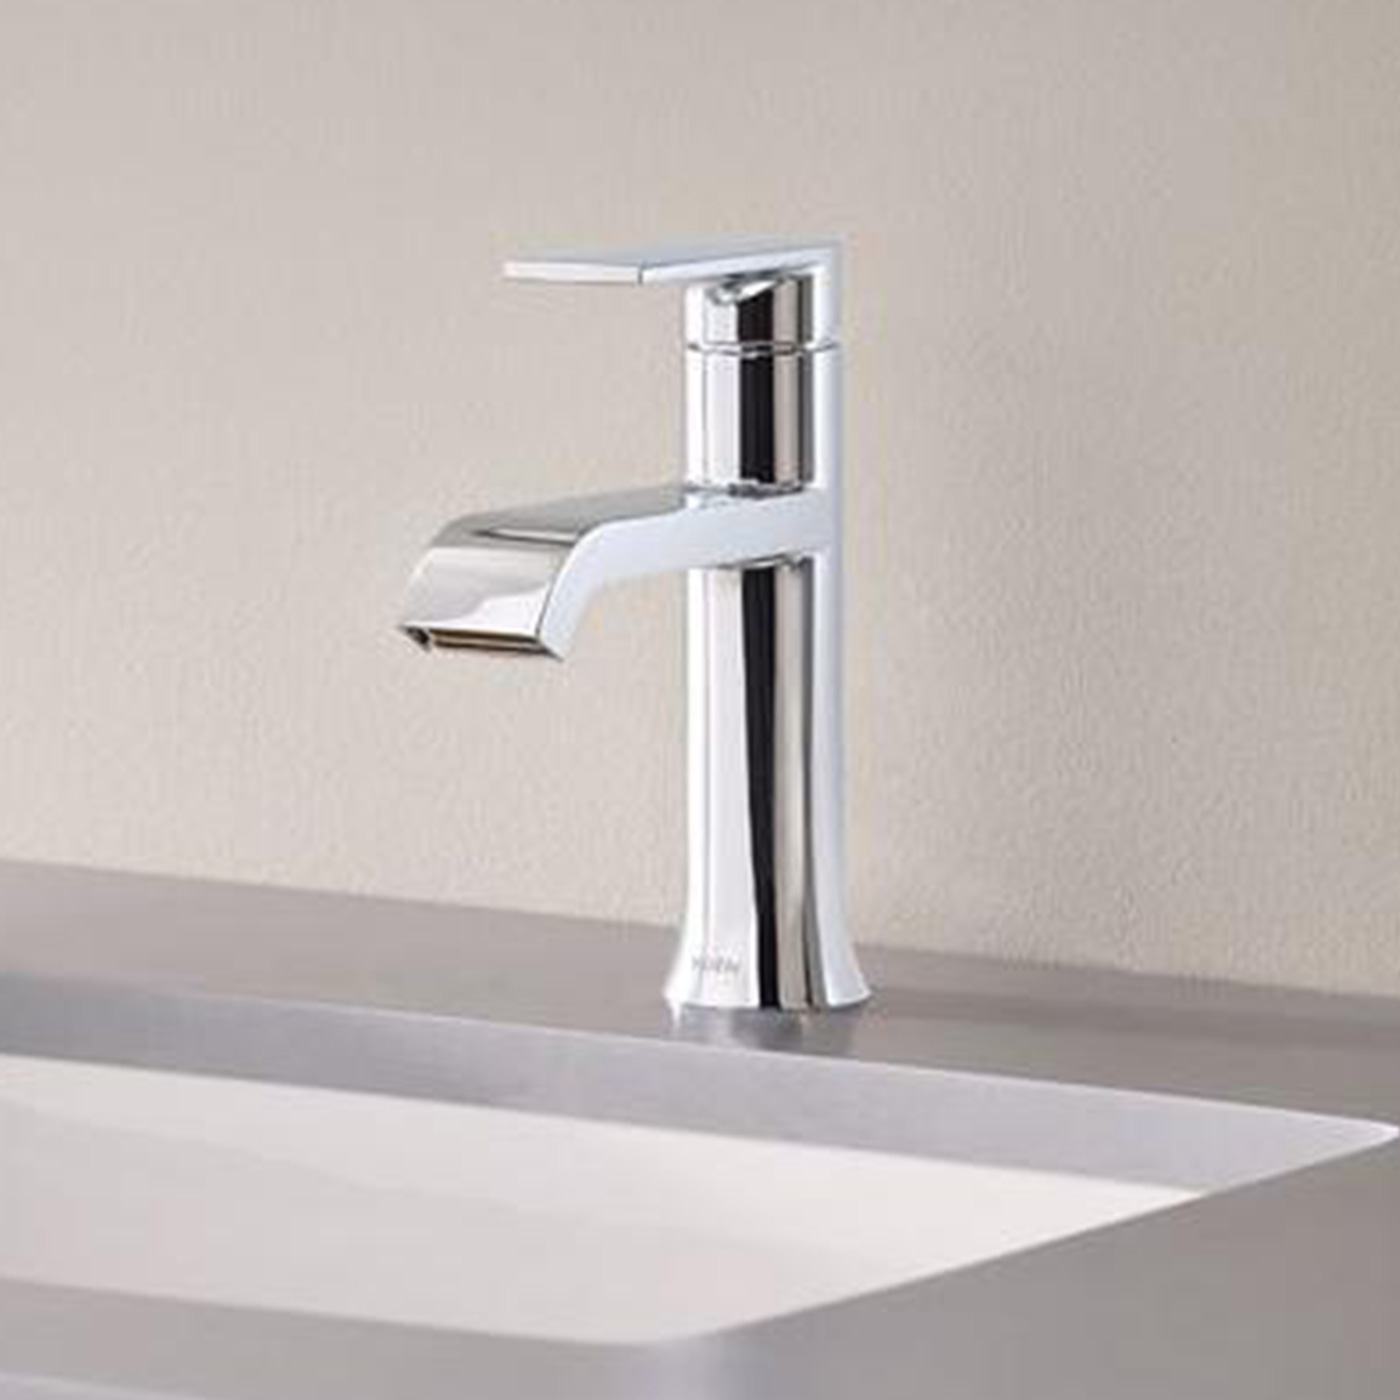 Fabulous Bathroom Faucets For Your Sink Shower Head And Bathtub Best Image Libraries Weasiibadanjobscom